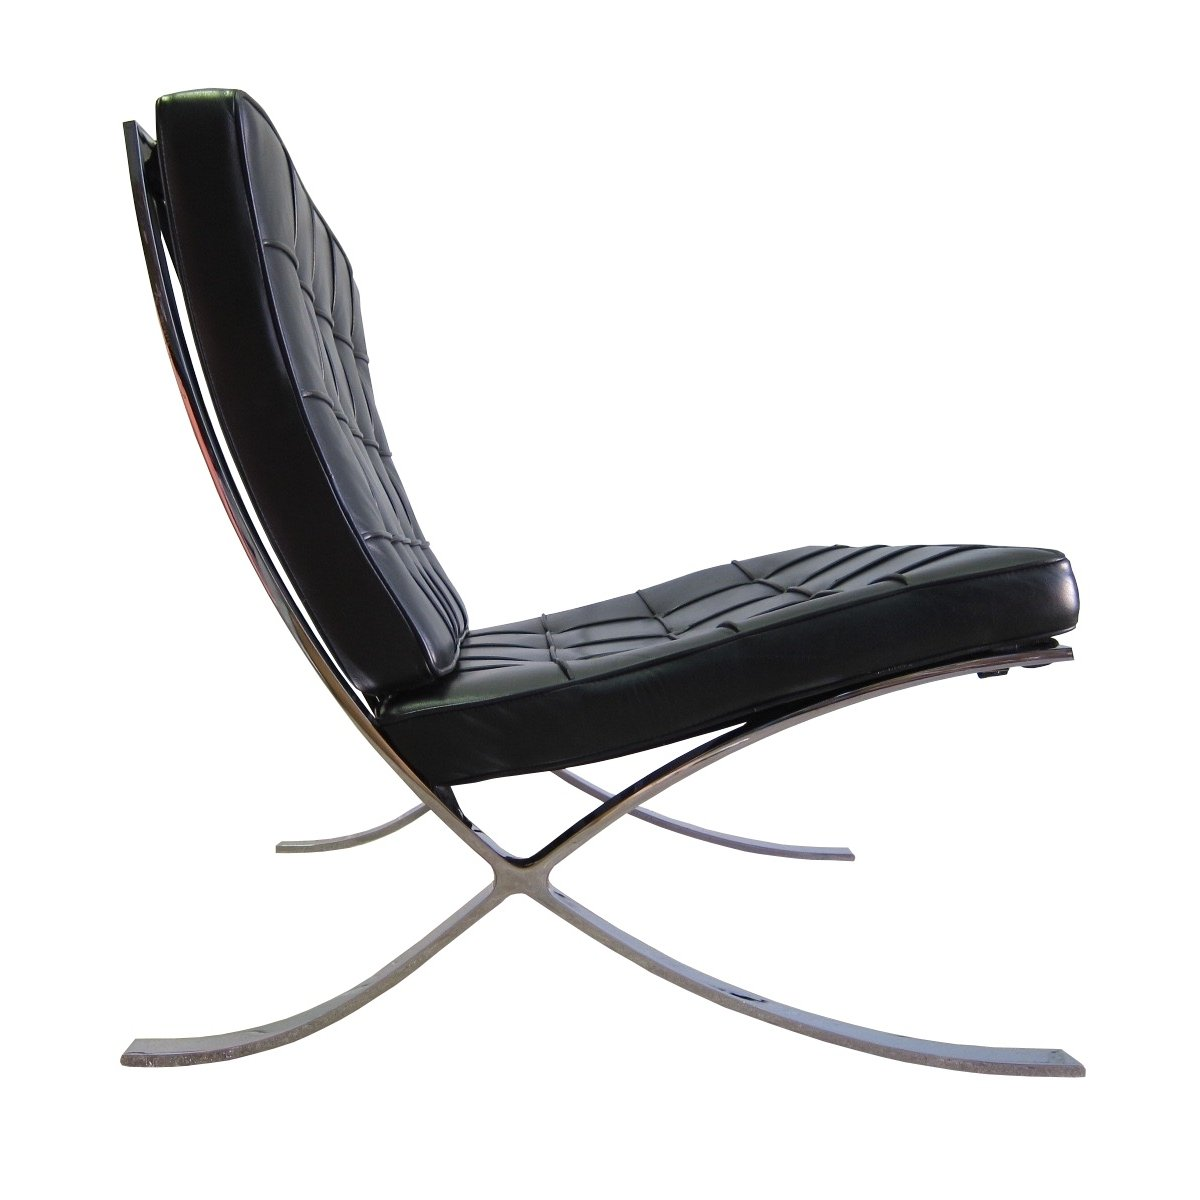 Vintage Knoll International Barcelona Chair By Ludwig Mies Van Der Rohe,  1990s